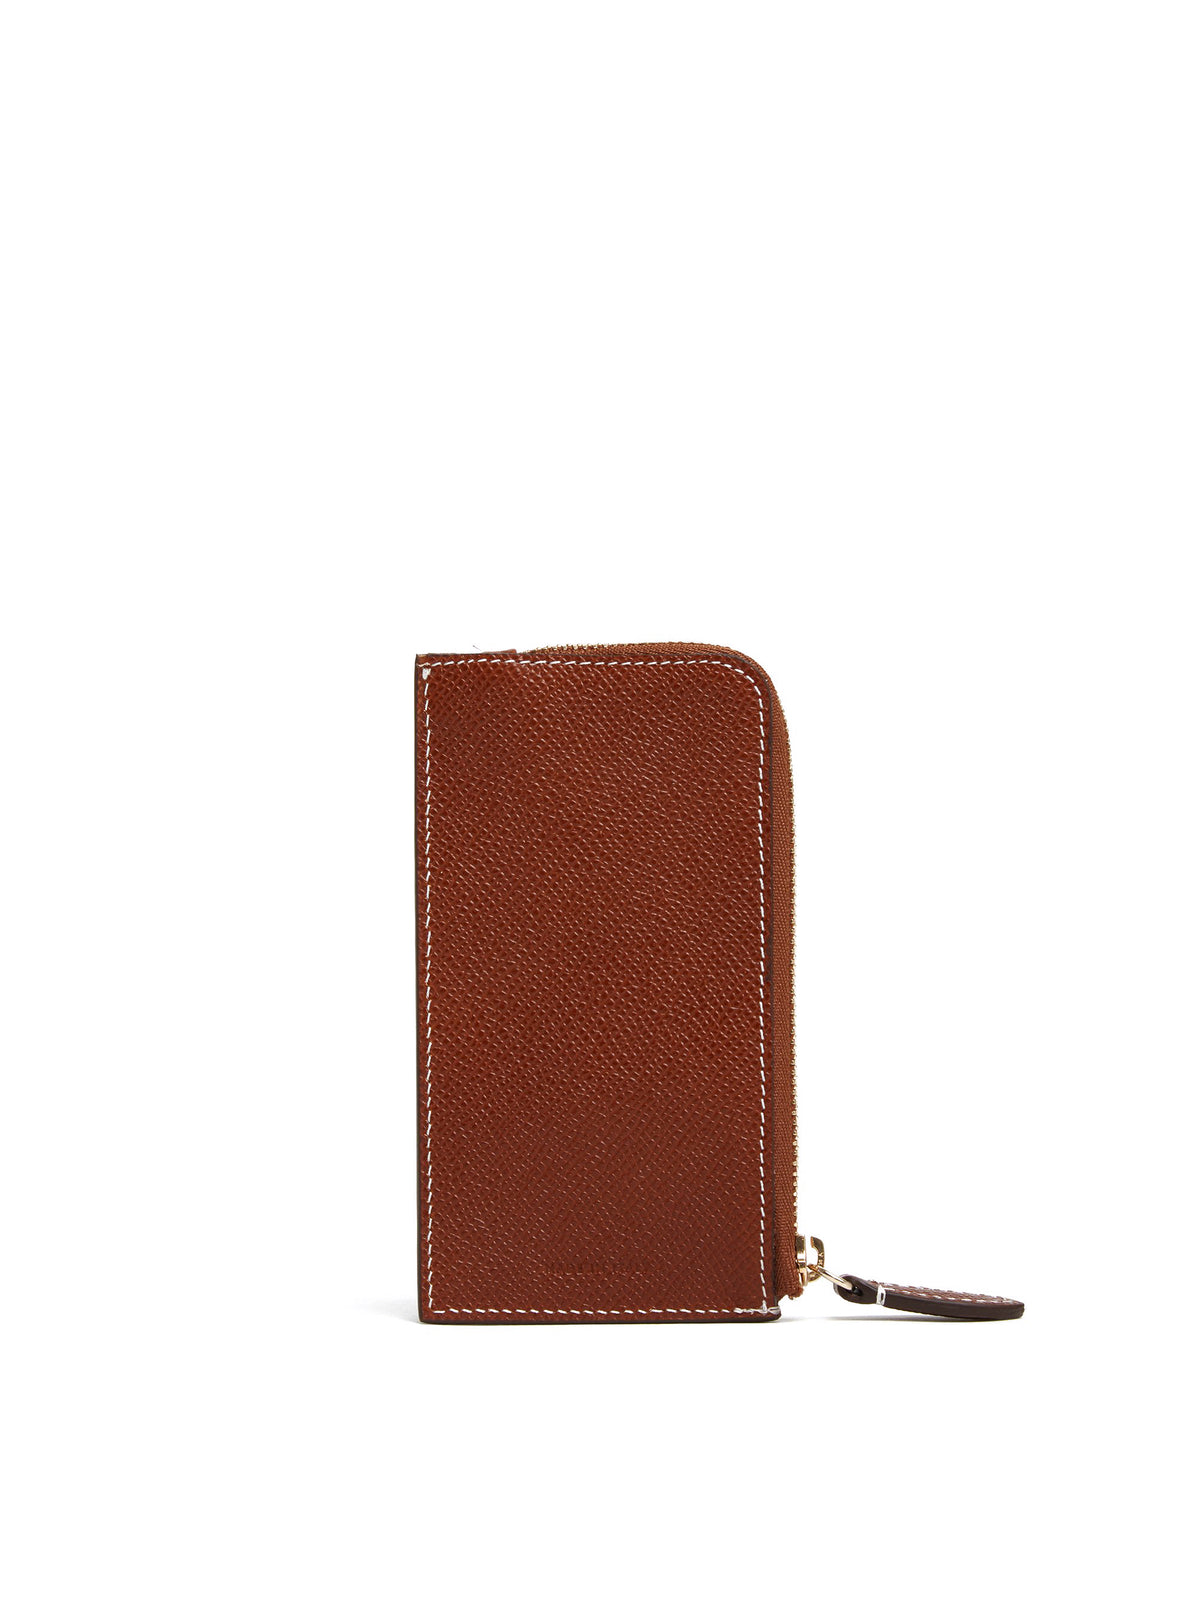 Mark Cross Leather Zip Card Case Saffiano Acorn Back